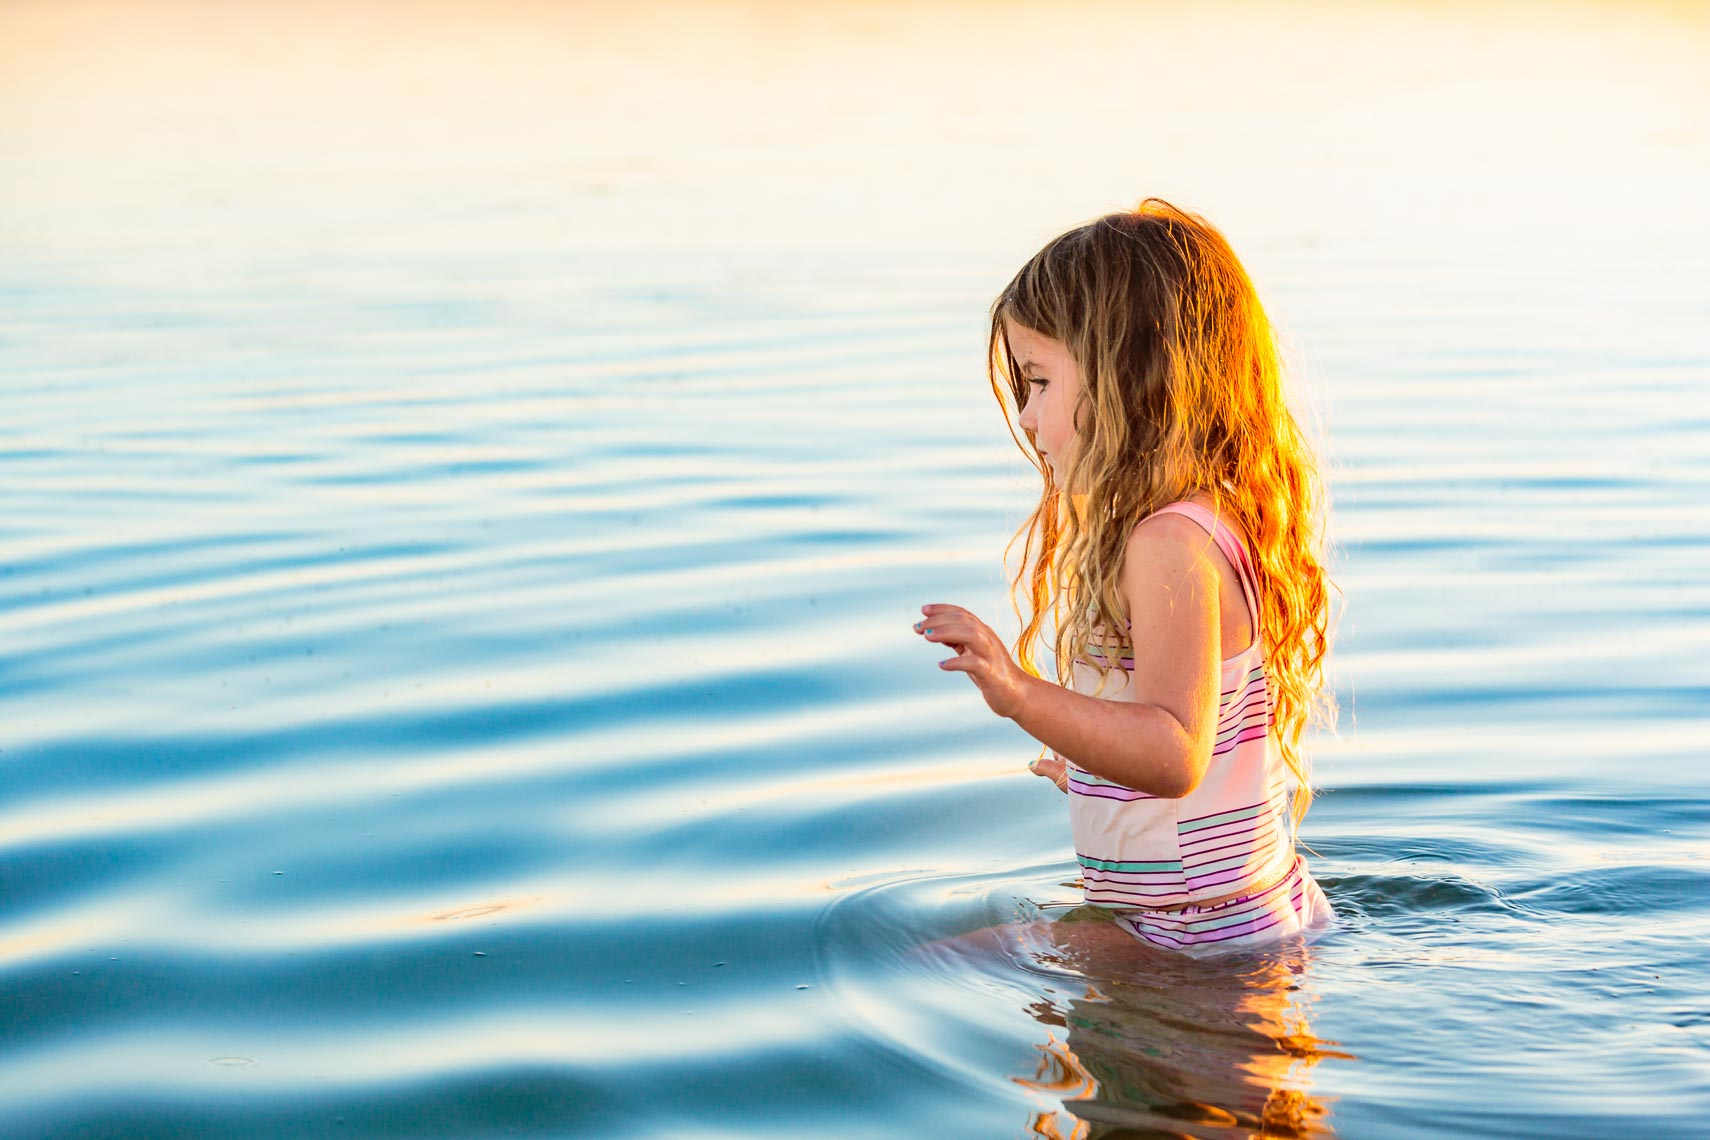 Young Girl Wading in Great Salt Lake Utah | Michael DeYoung